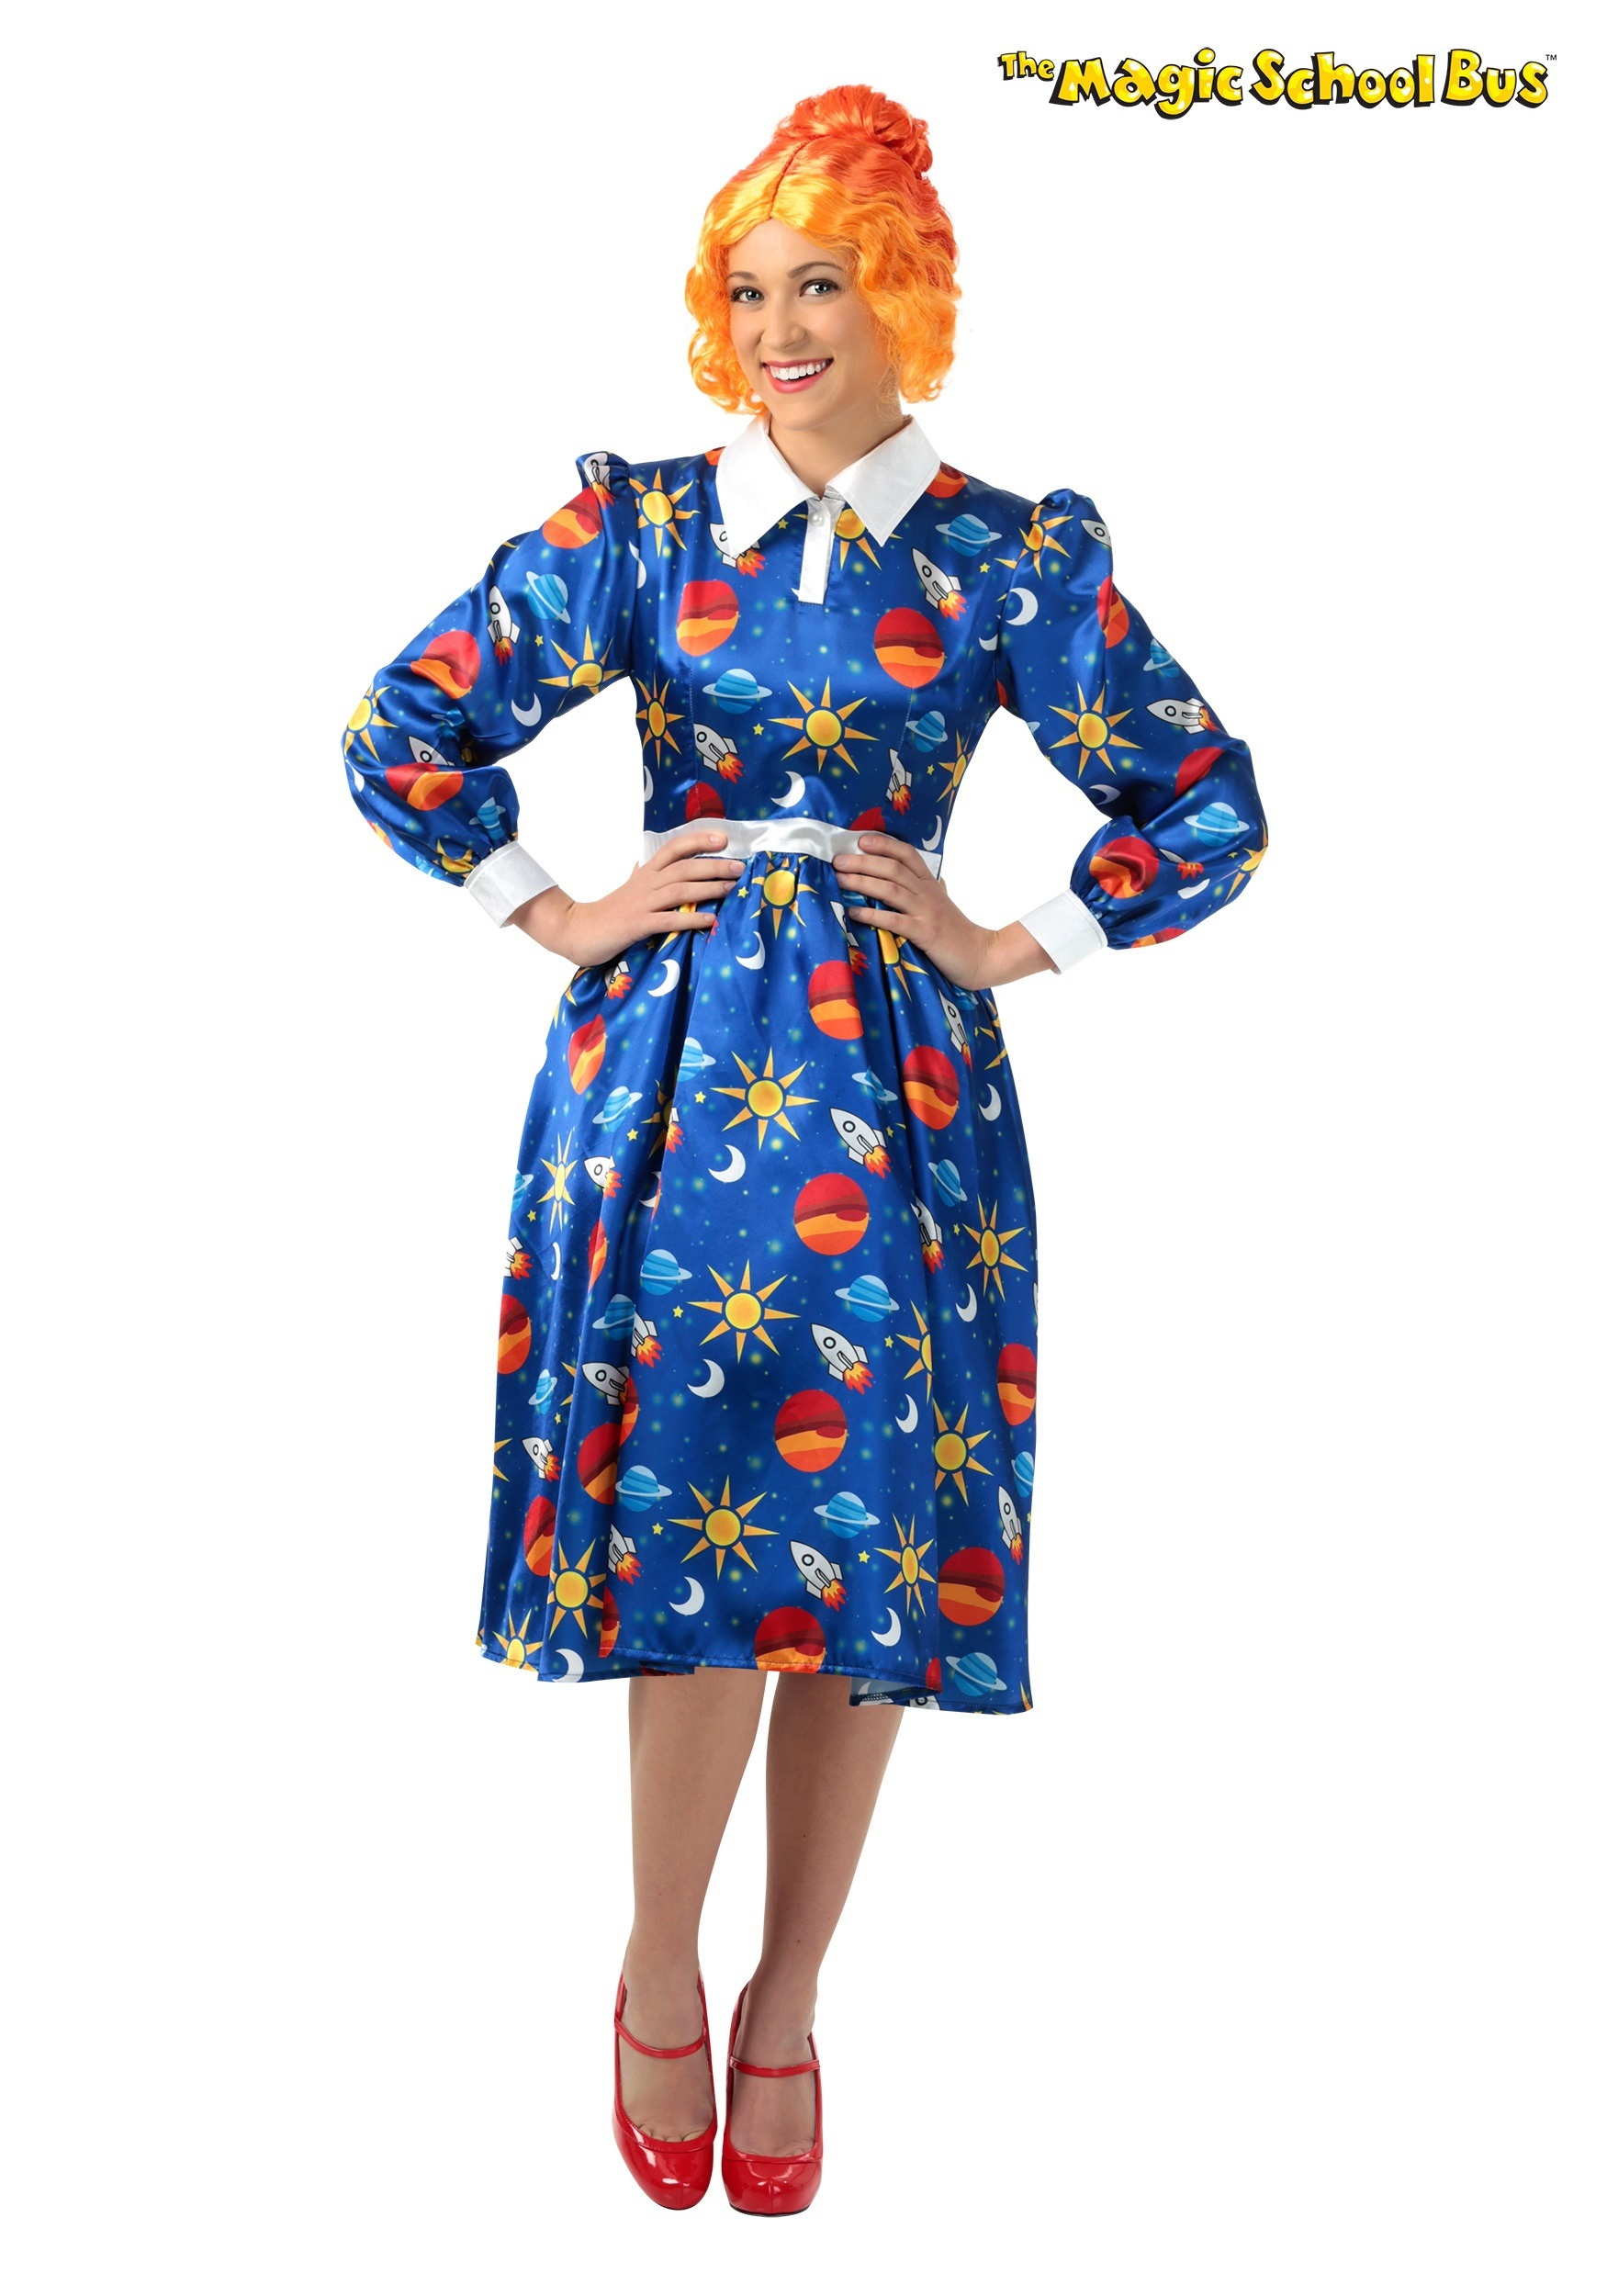 ms frizzle height